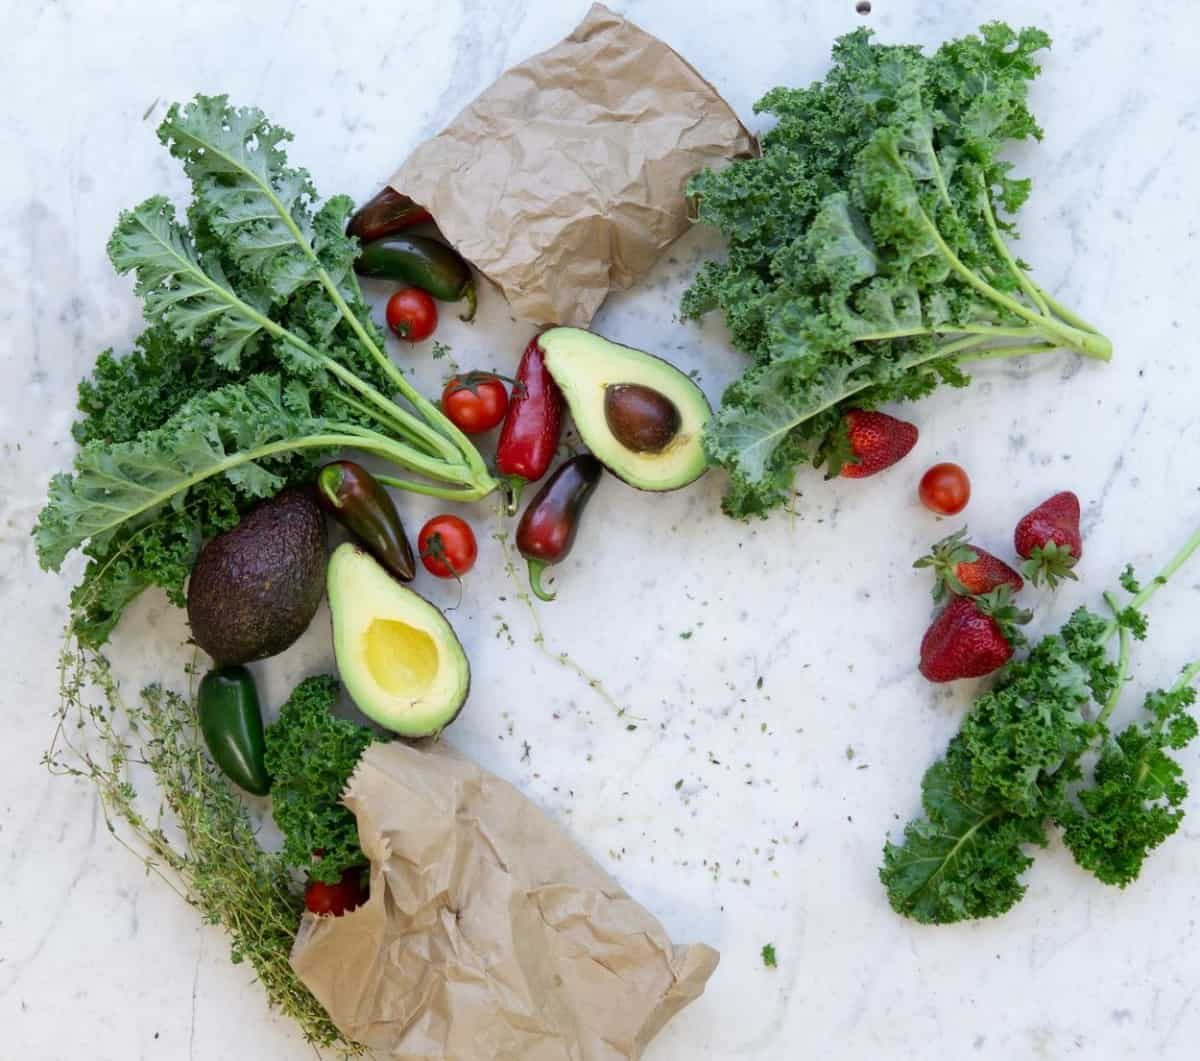 Kale and other veggies